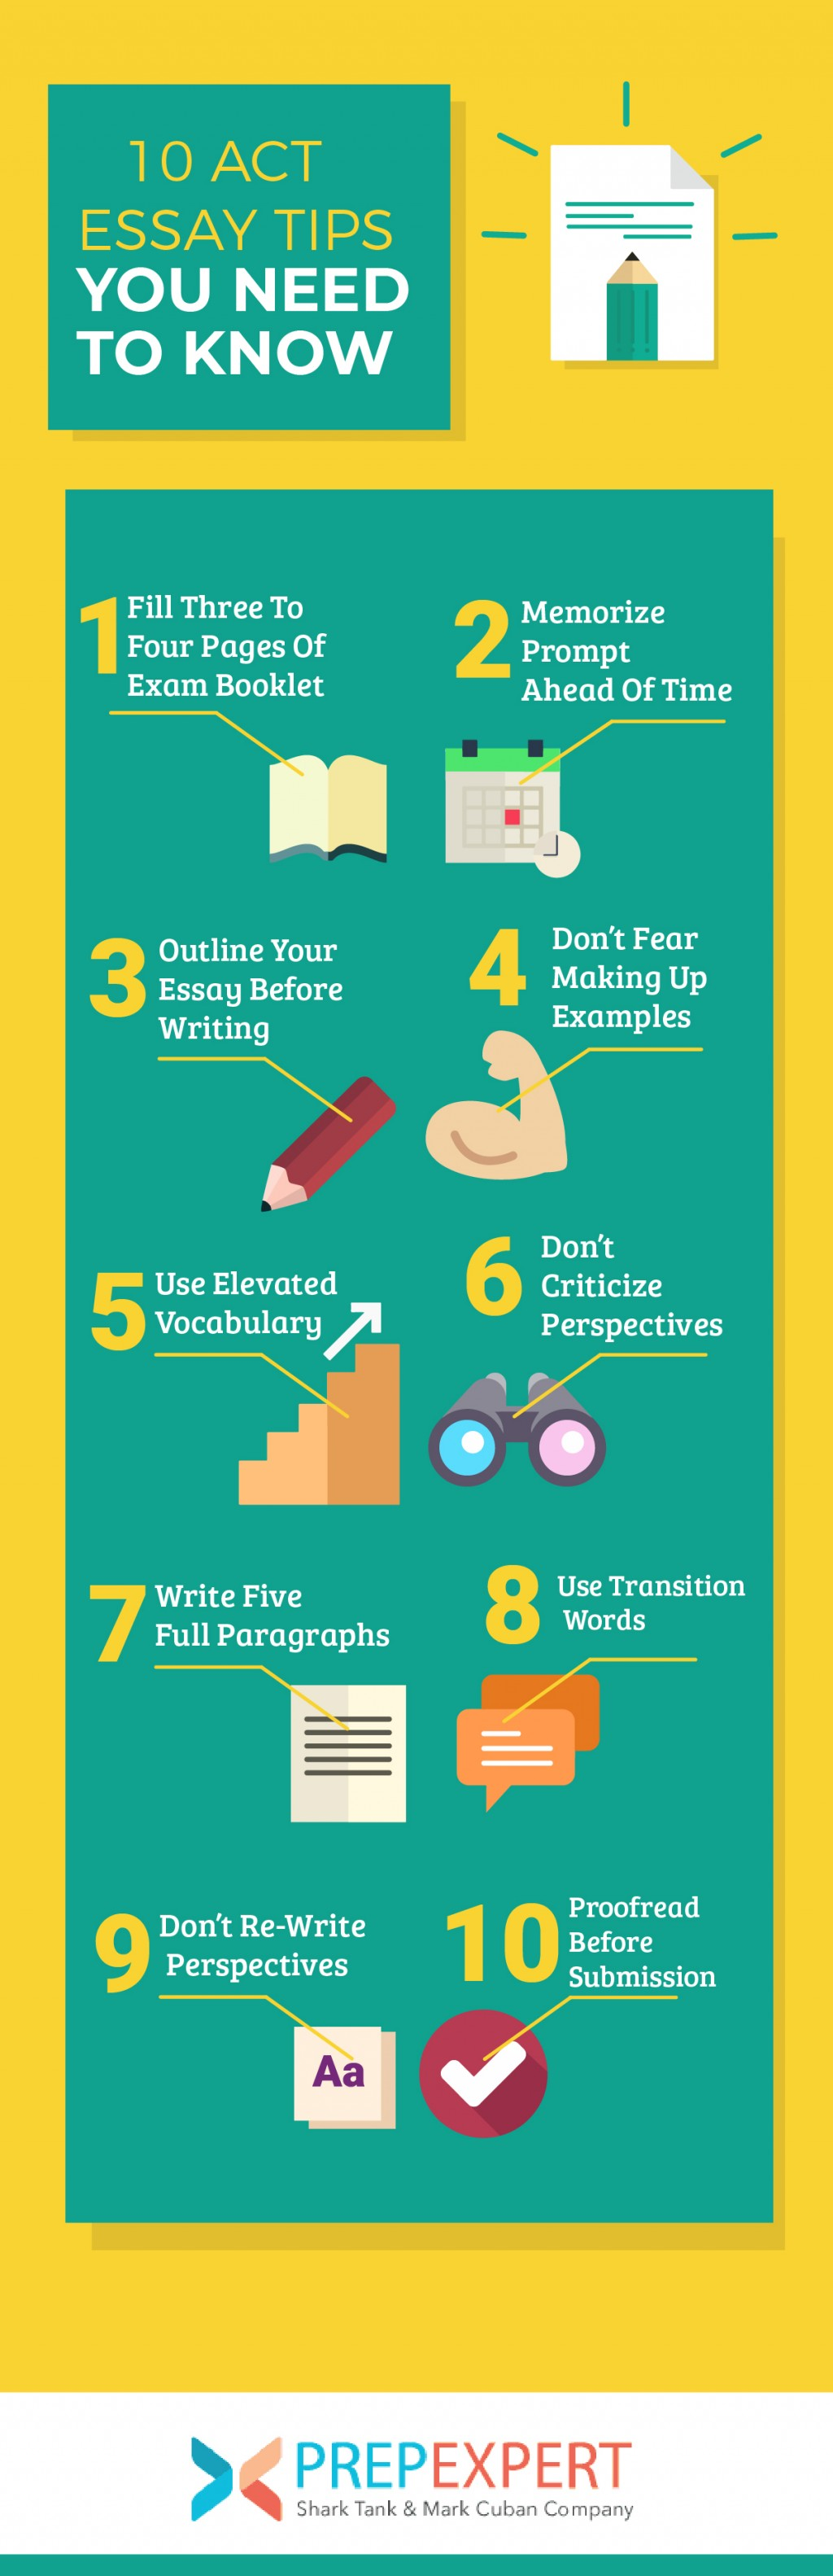 010 Essay Example 235585 Essayinfographics 052918 How To Write Wonderful Act Good Do You And Scene In An A Perfect Large